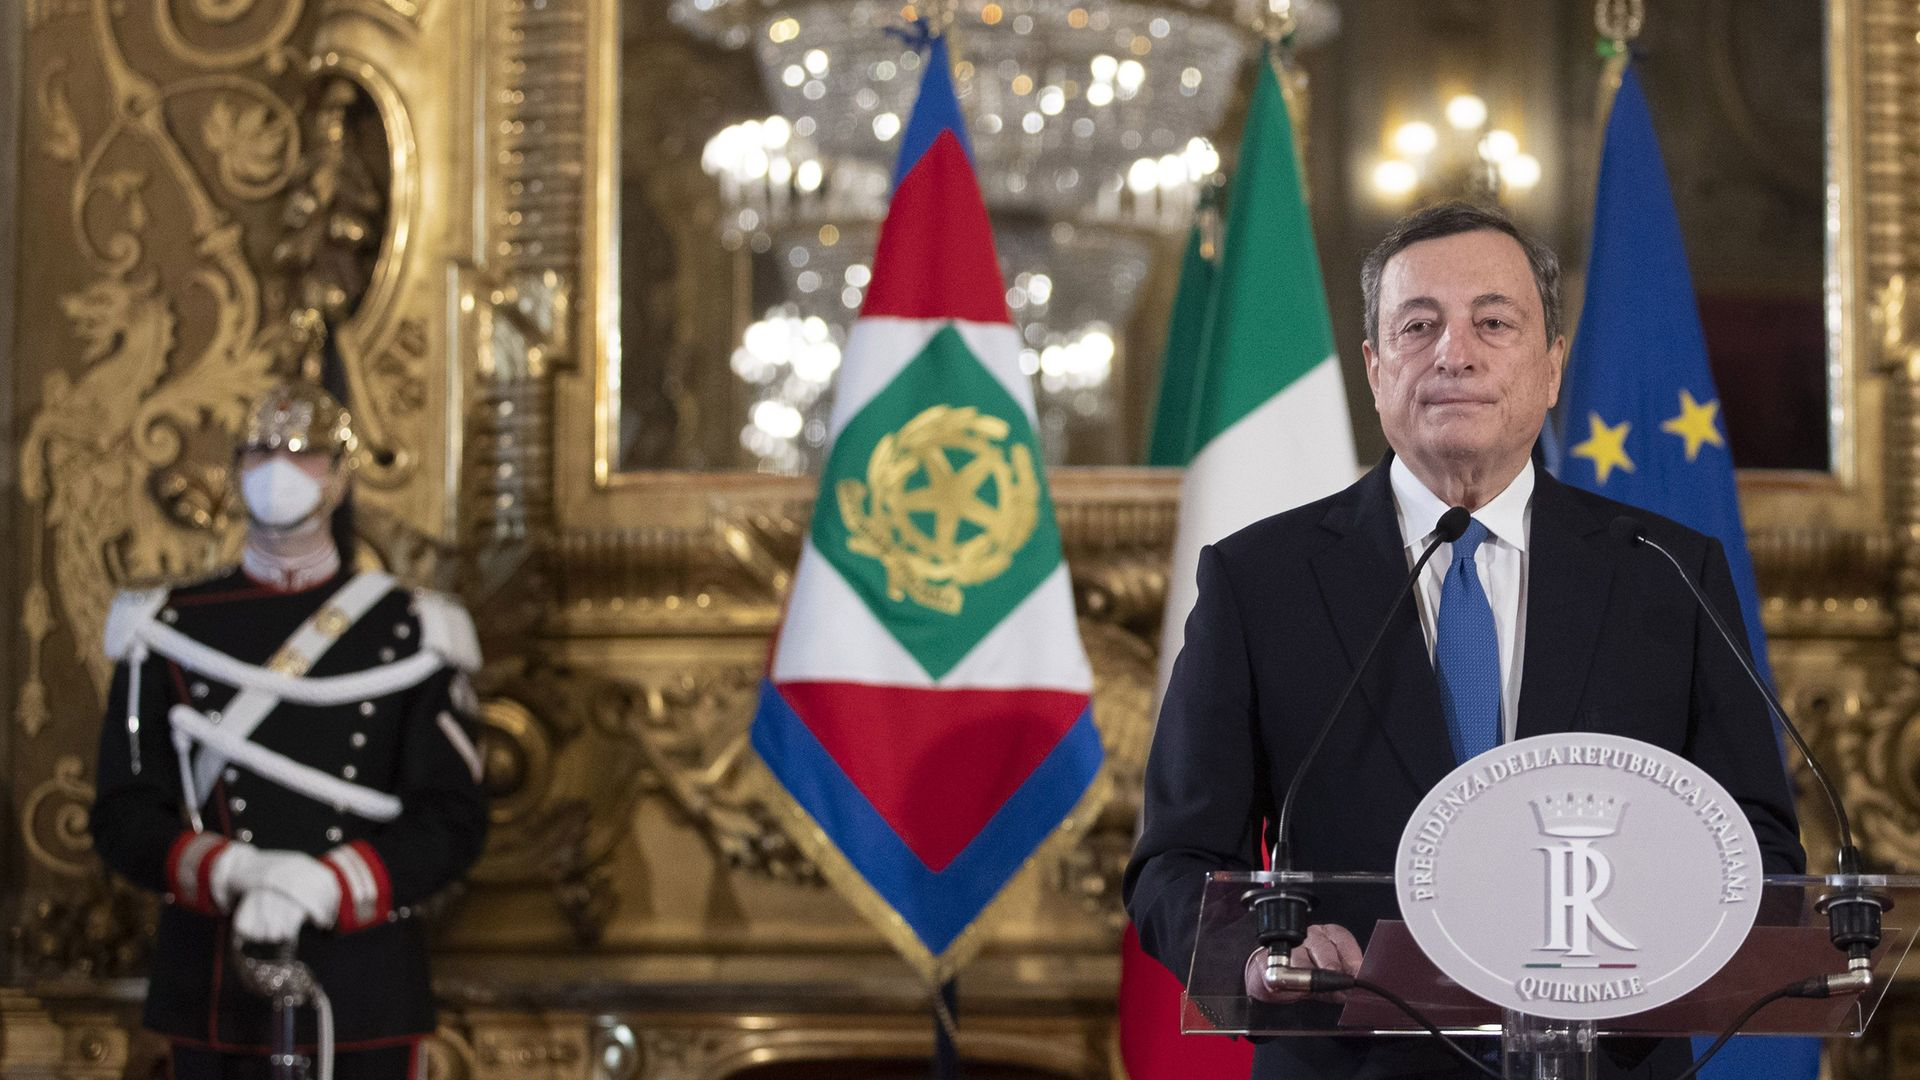 Mario Draghi at the Quirinal palace in Rome - Credit: POOL/AFP via Getty Images